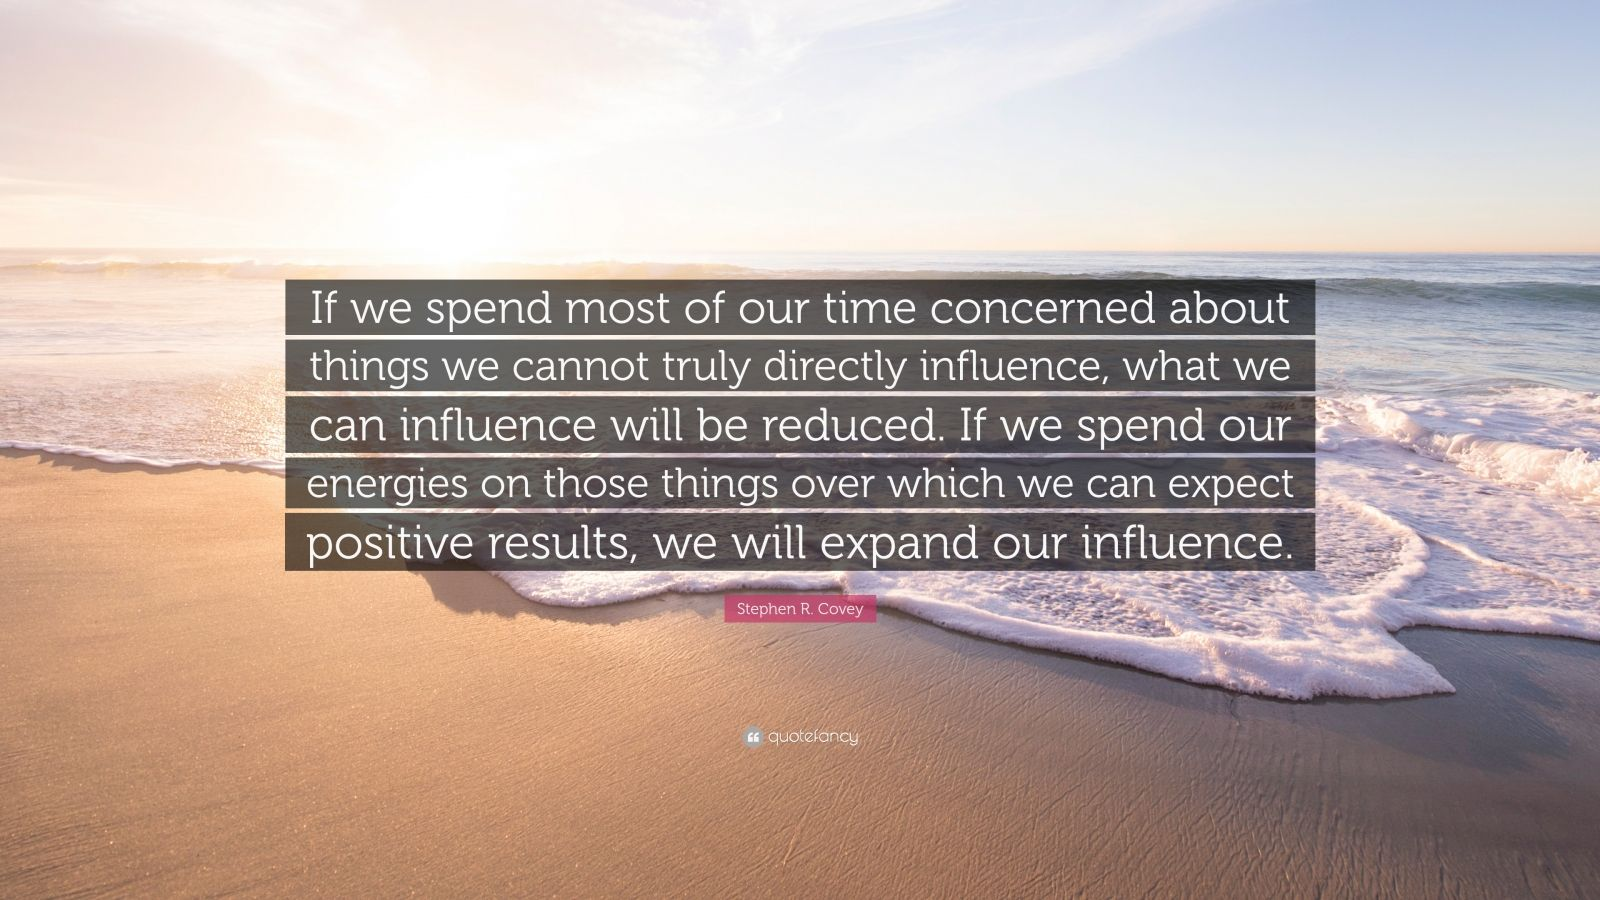 "Stephen R. Covey Quote: ""If we spend most of our time concerned about things we cannot truly directly influence, what we can influence will be reduced. If we spend our energies on those things over which we can expect positive results, we will expand our influence."""